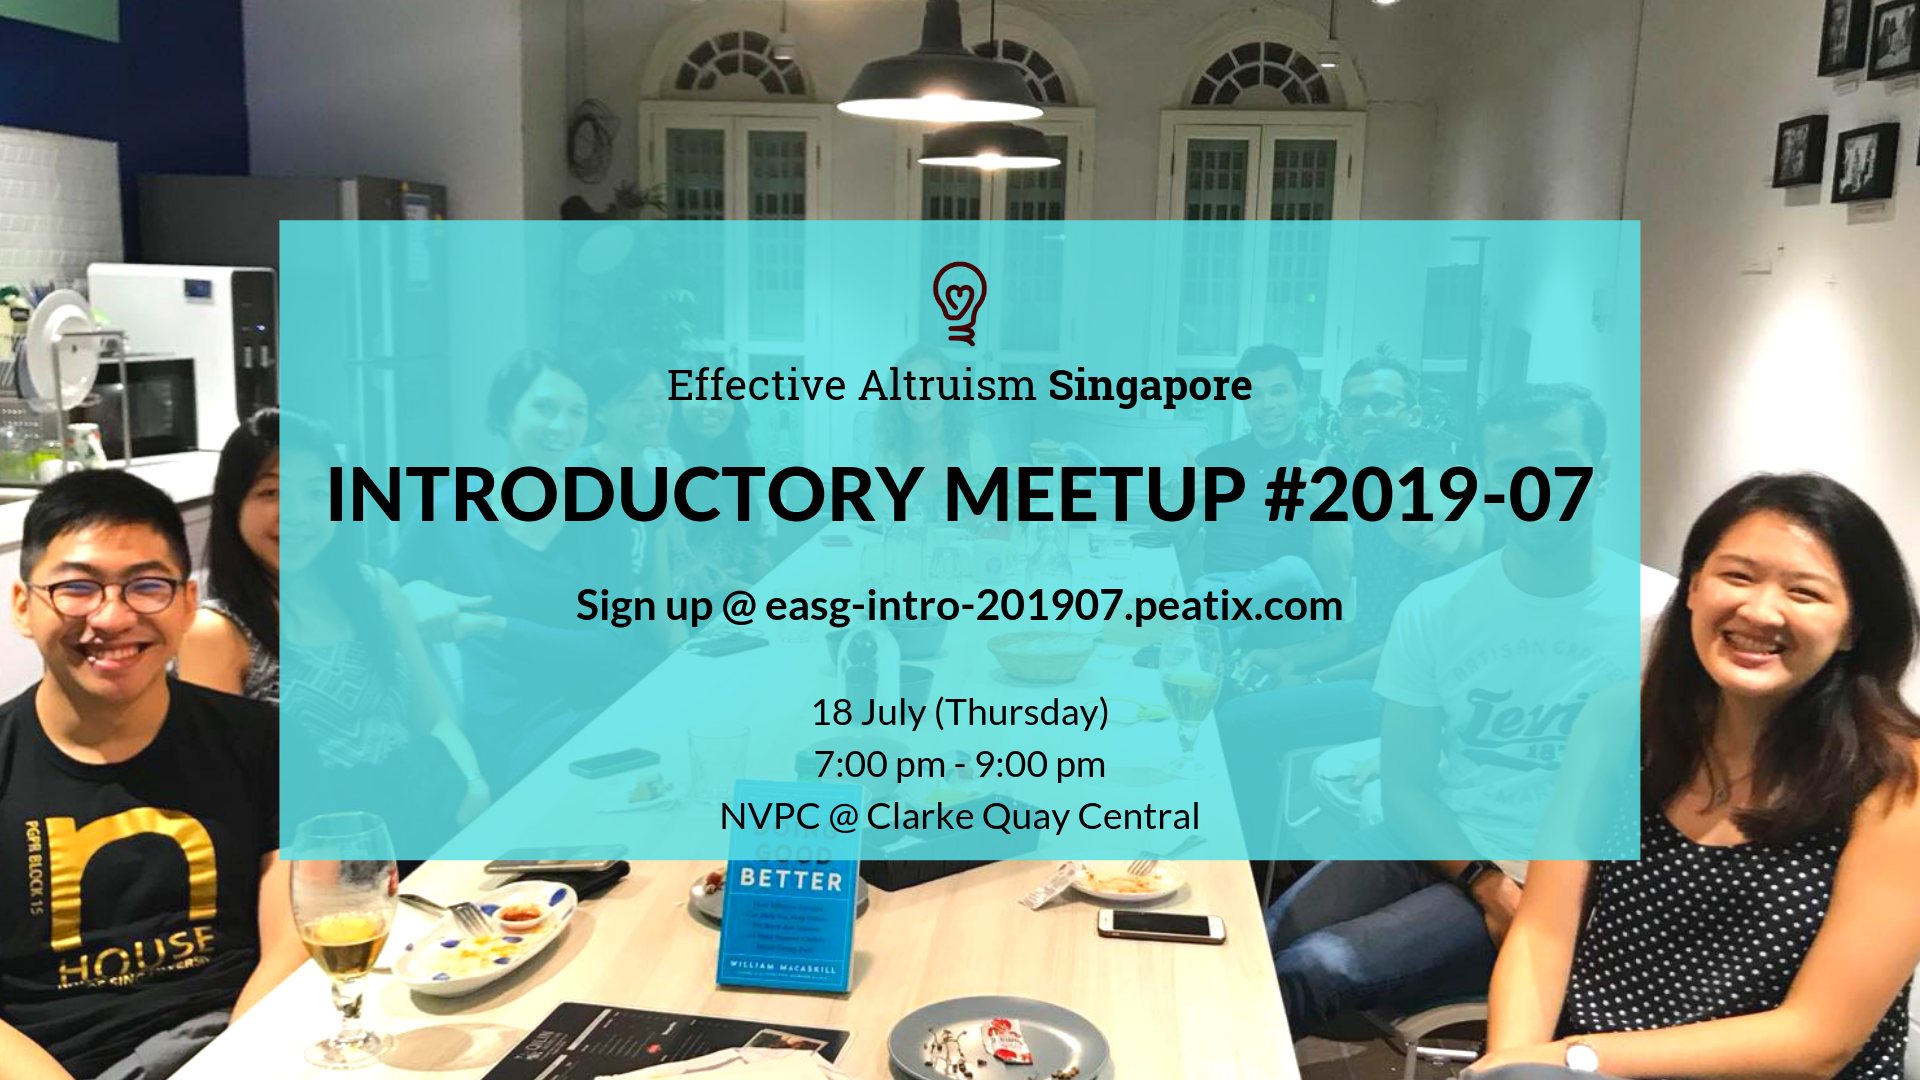 Introductory Meetup #2019-07 Facebook Poster.png